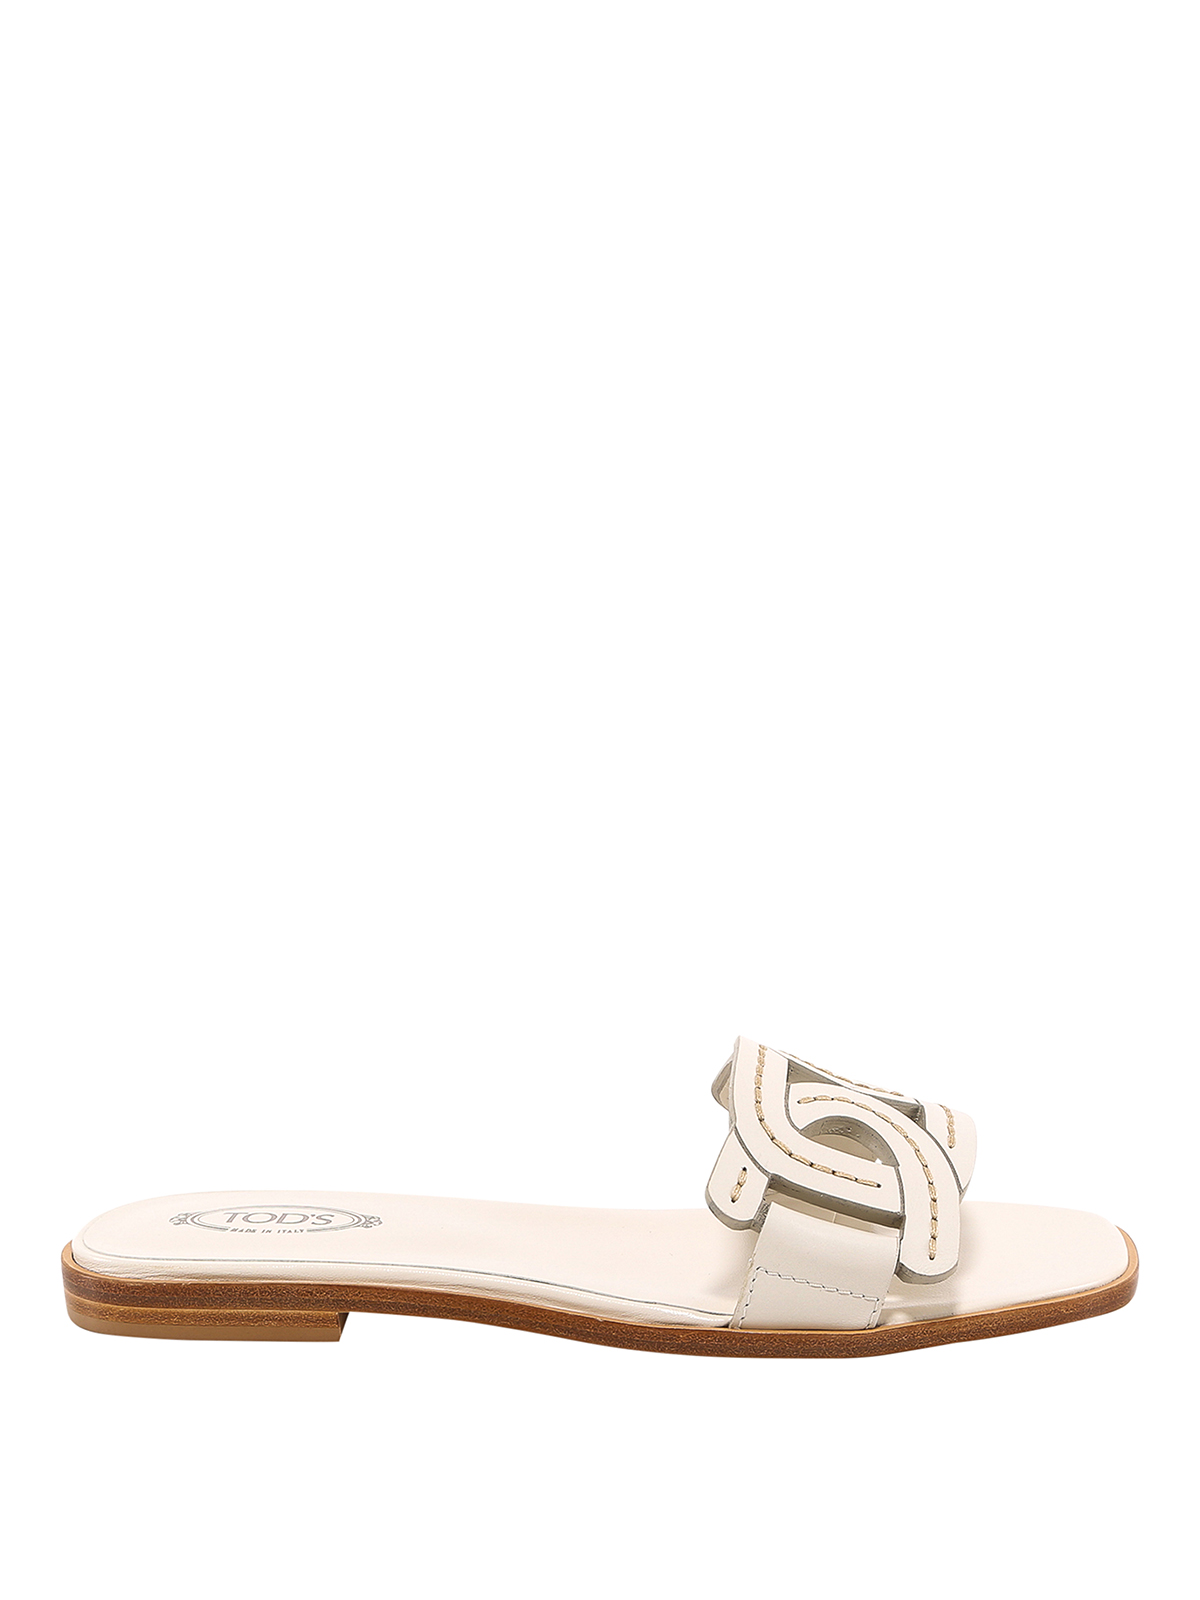 Tod's Leathers LEATHER FLAT SANDALS